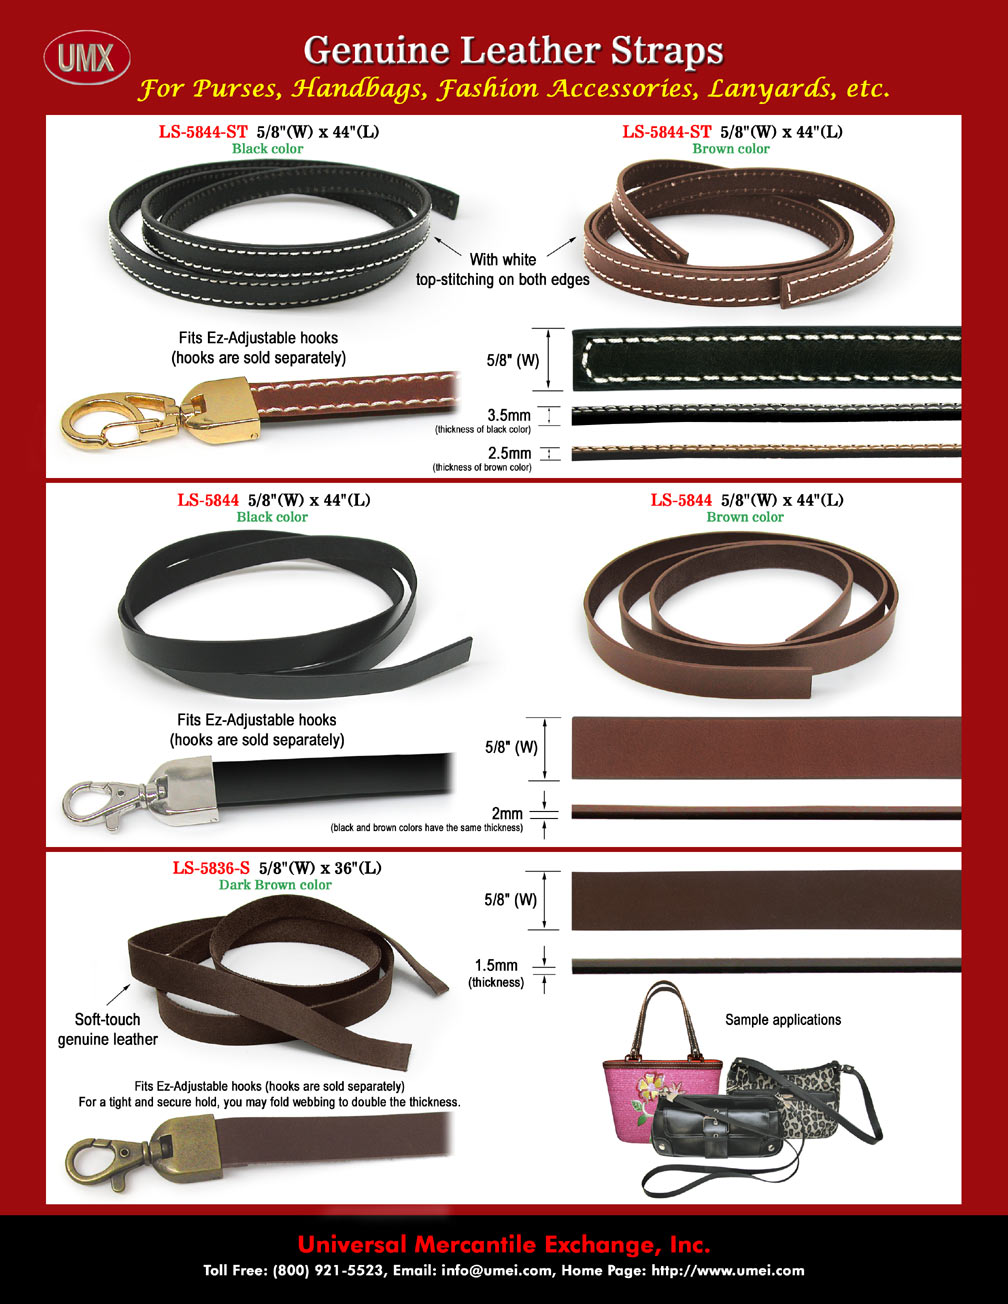 UMX Genuine Leather Lanyard Straps